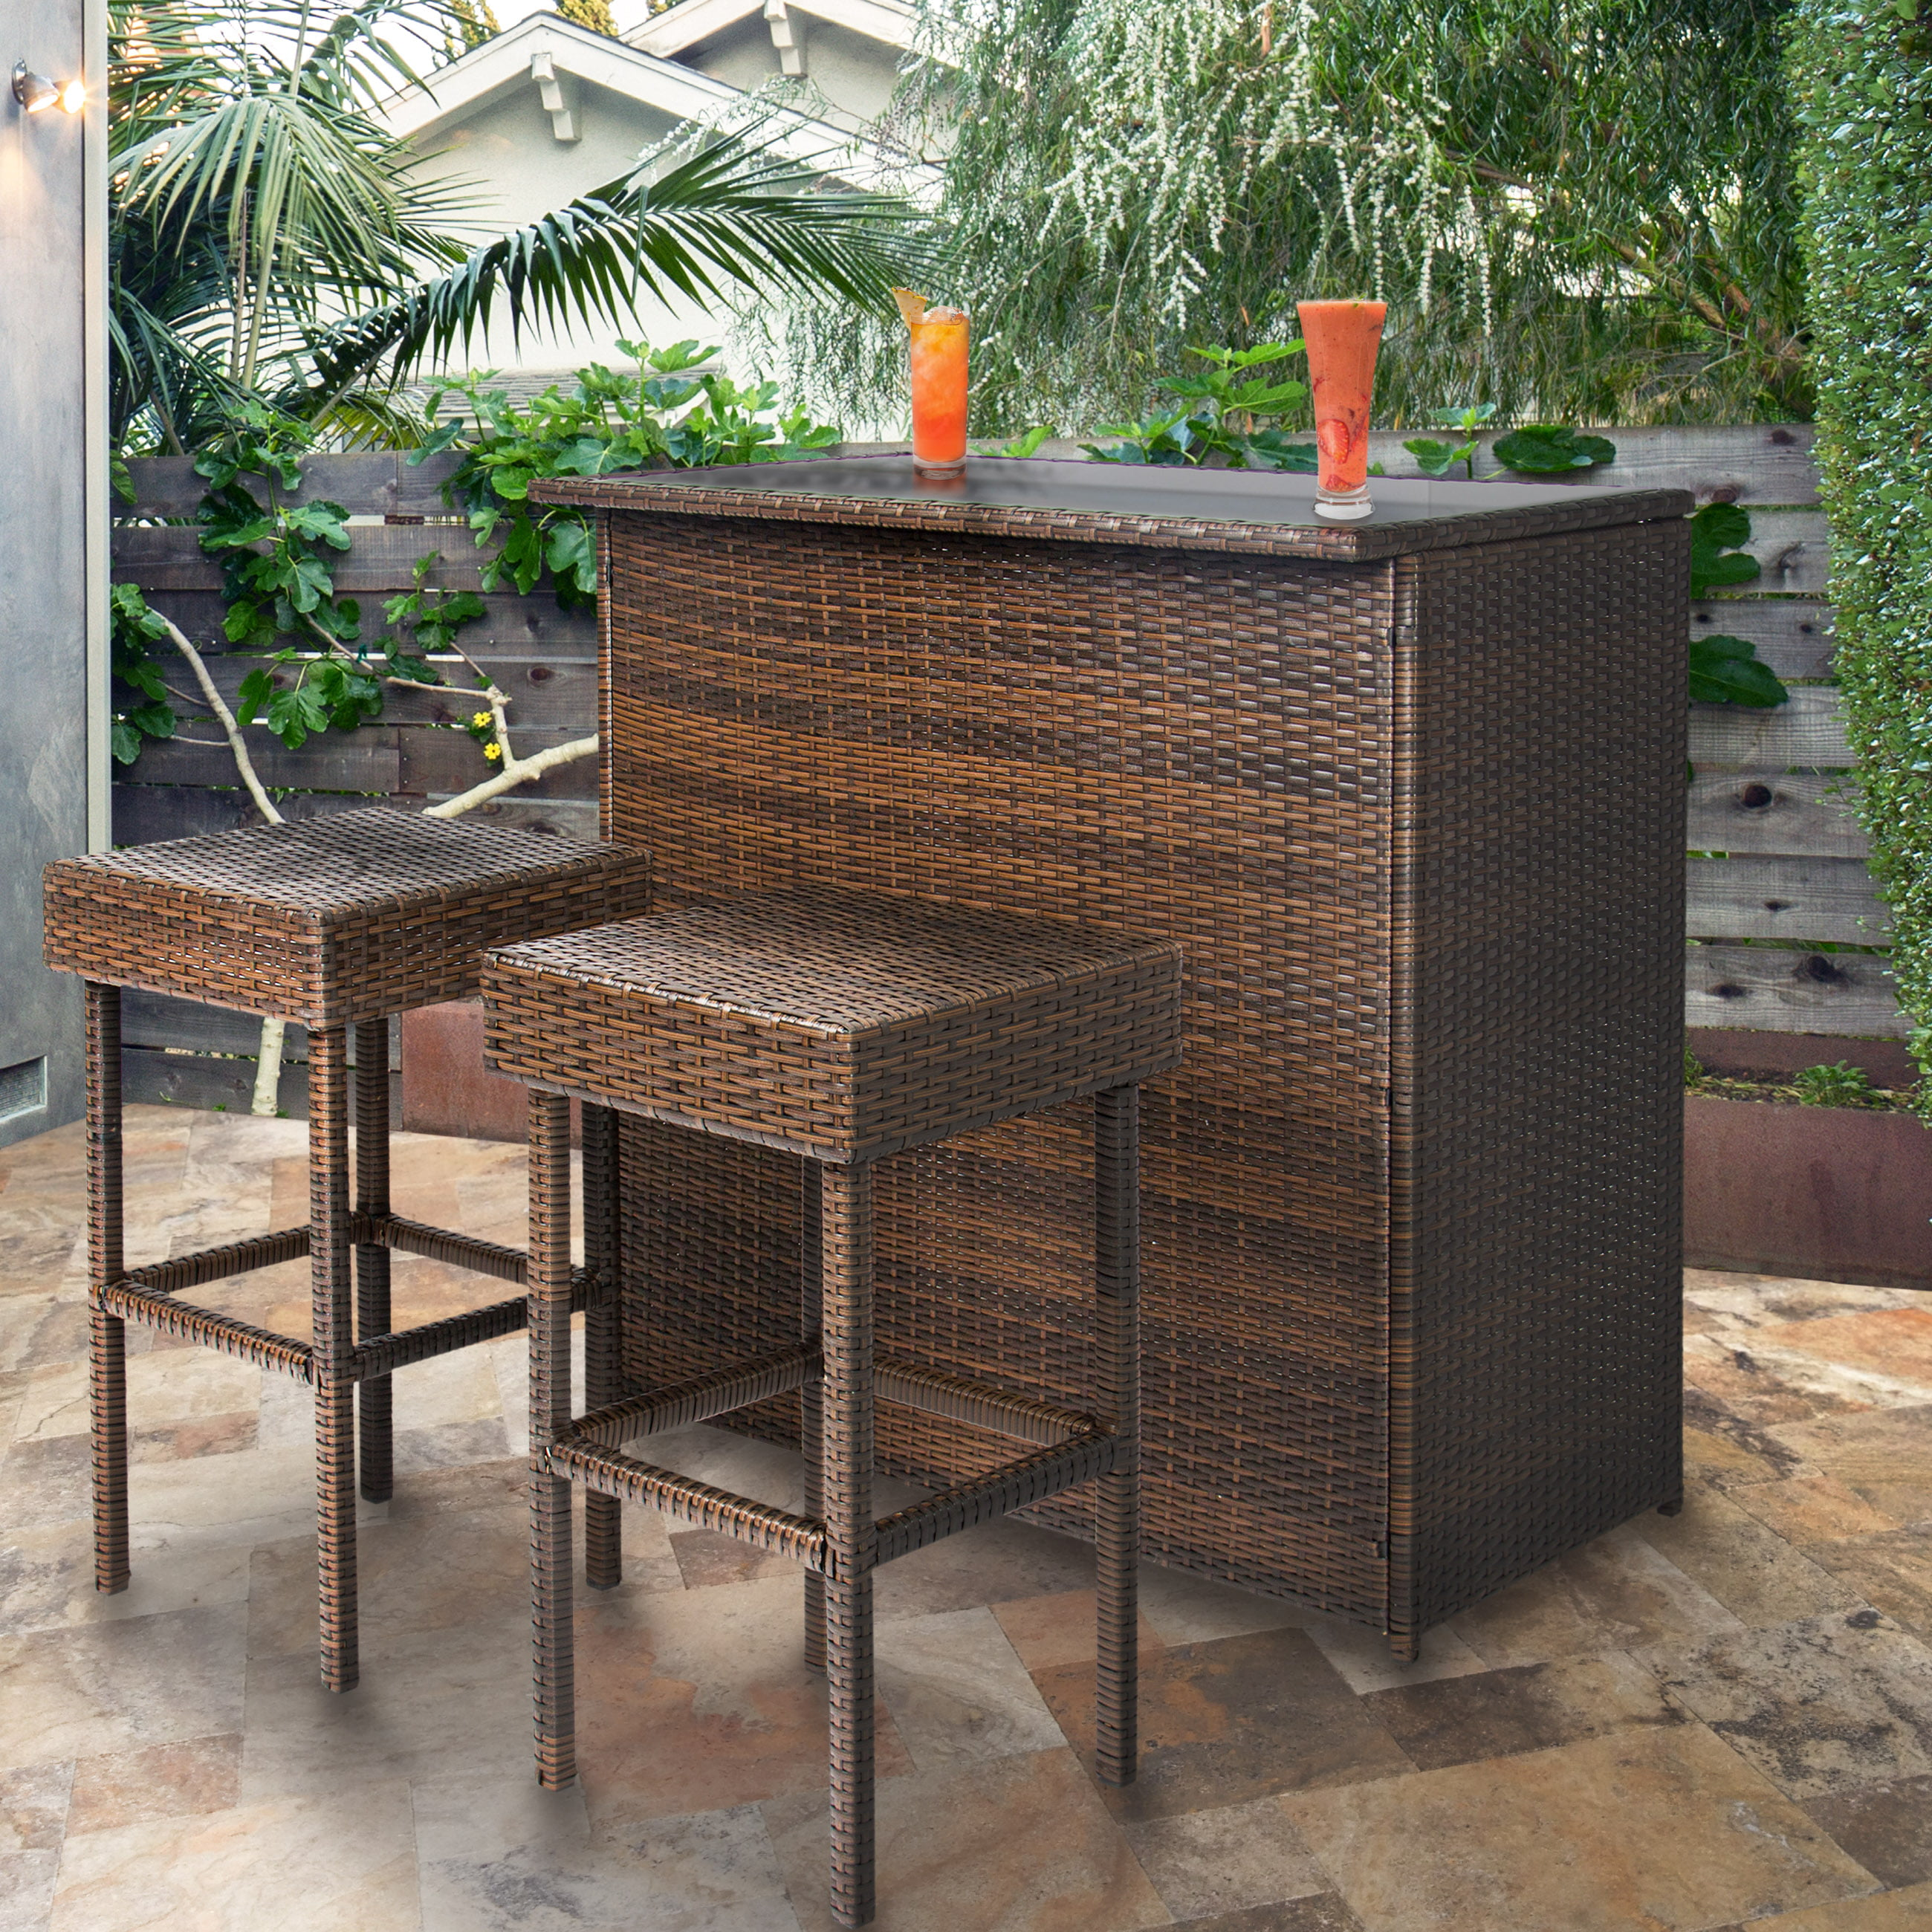 Backyard Patio Bar best choice products wicker 3-piece outdoor bar set - walmart